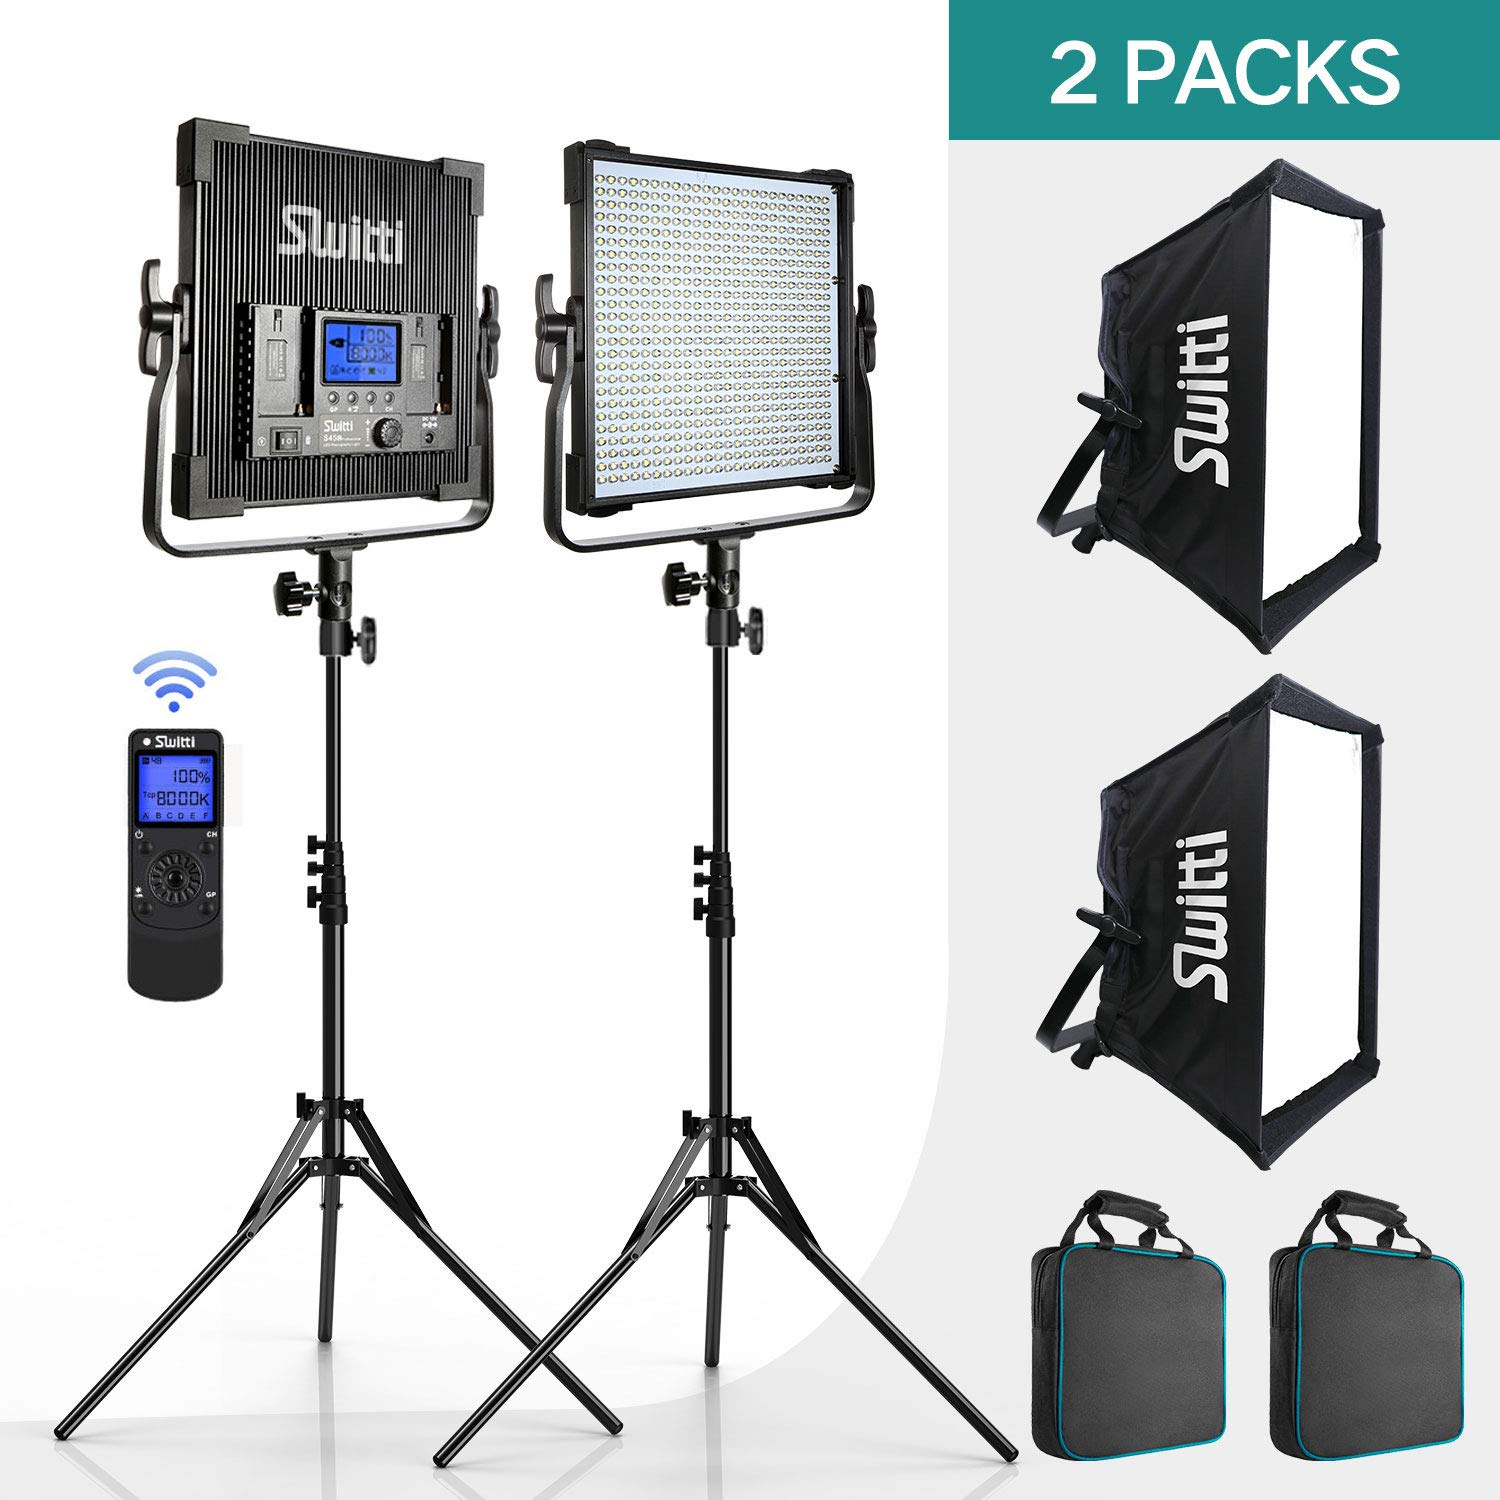 2 Packs Bi-Color 600 LED Video Lights 45W, Switti Led Light Panels CRI96+ with 200cm Light Stands Softbox Lighting Kit 3000K-8000K, Lights for Video Studio YouTube Photography Shooting(RC Included) by Switti